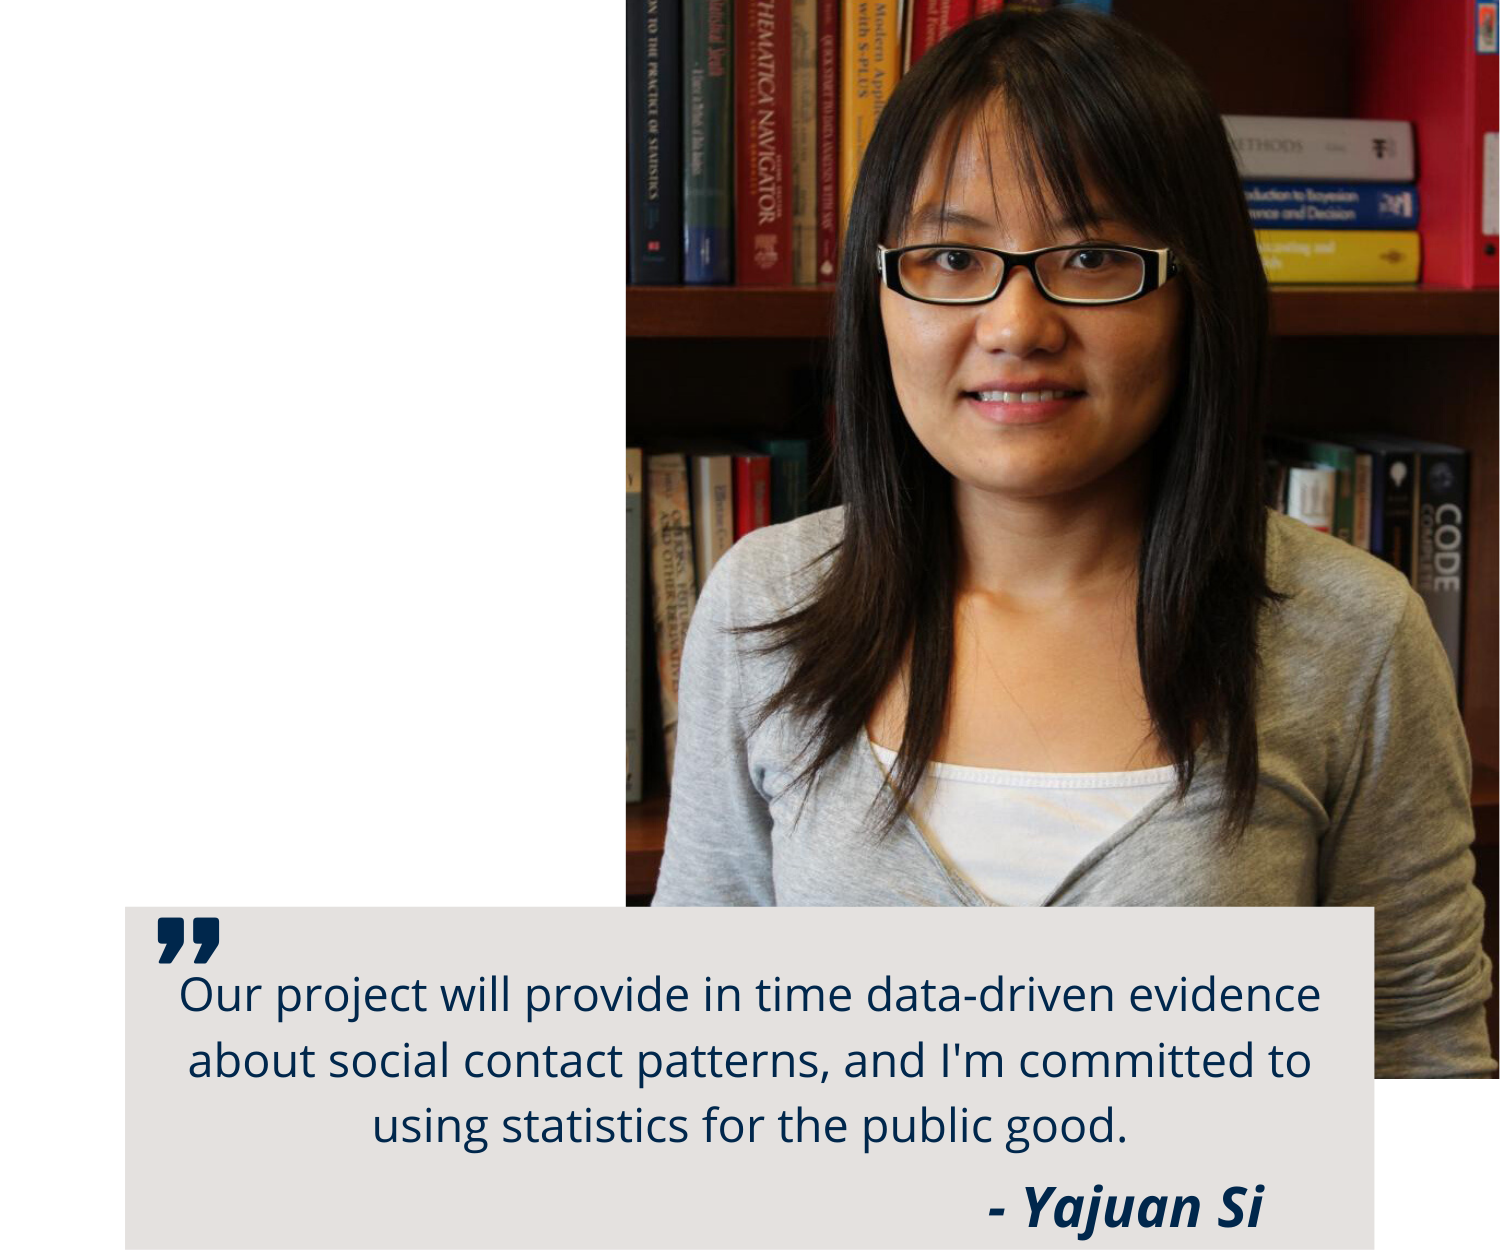 Our project will provide in time data-driven evidence about social contact patterns, and I'm committed to using statistics for the public good. - Yajuan Si